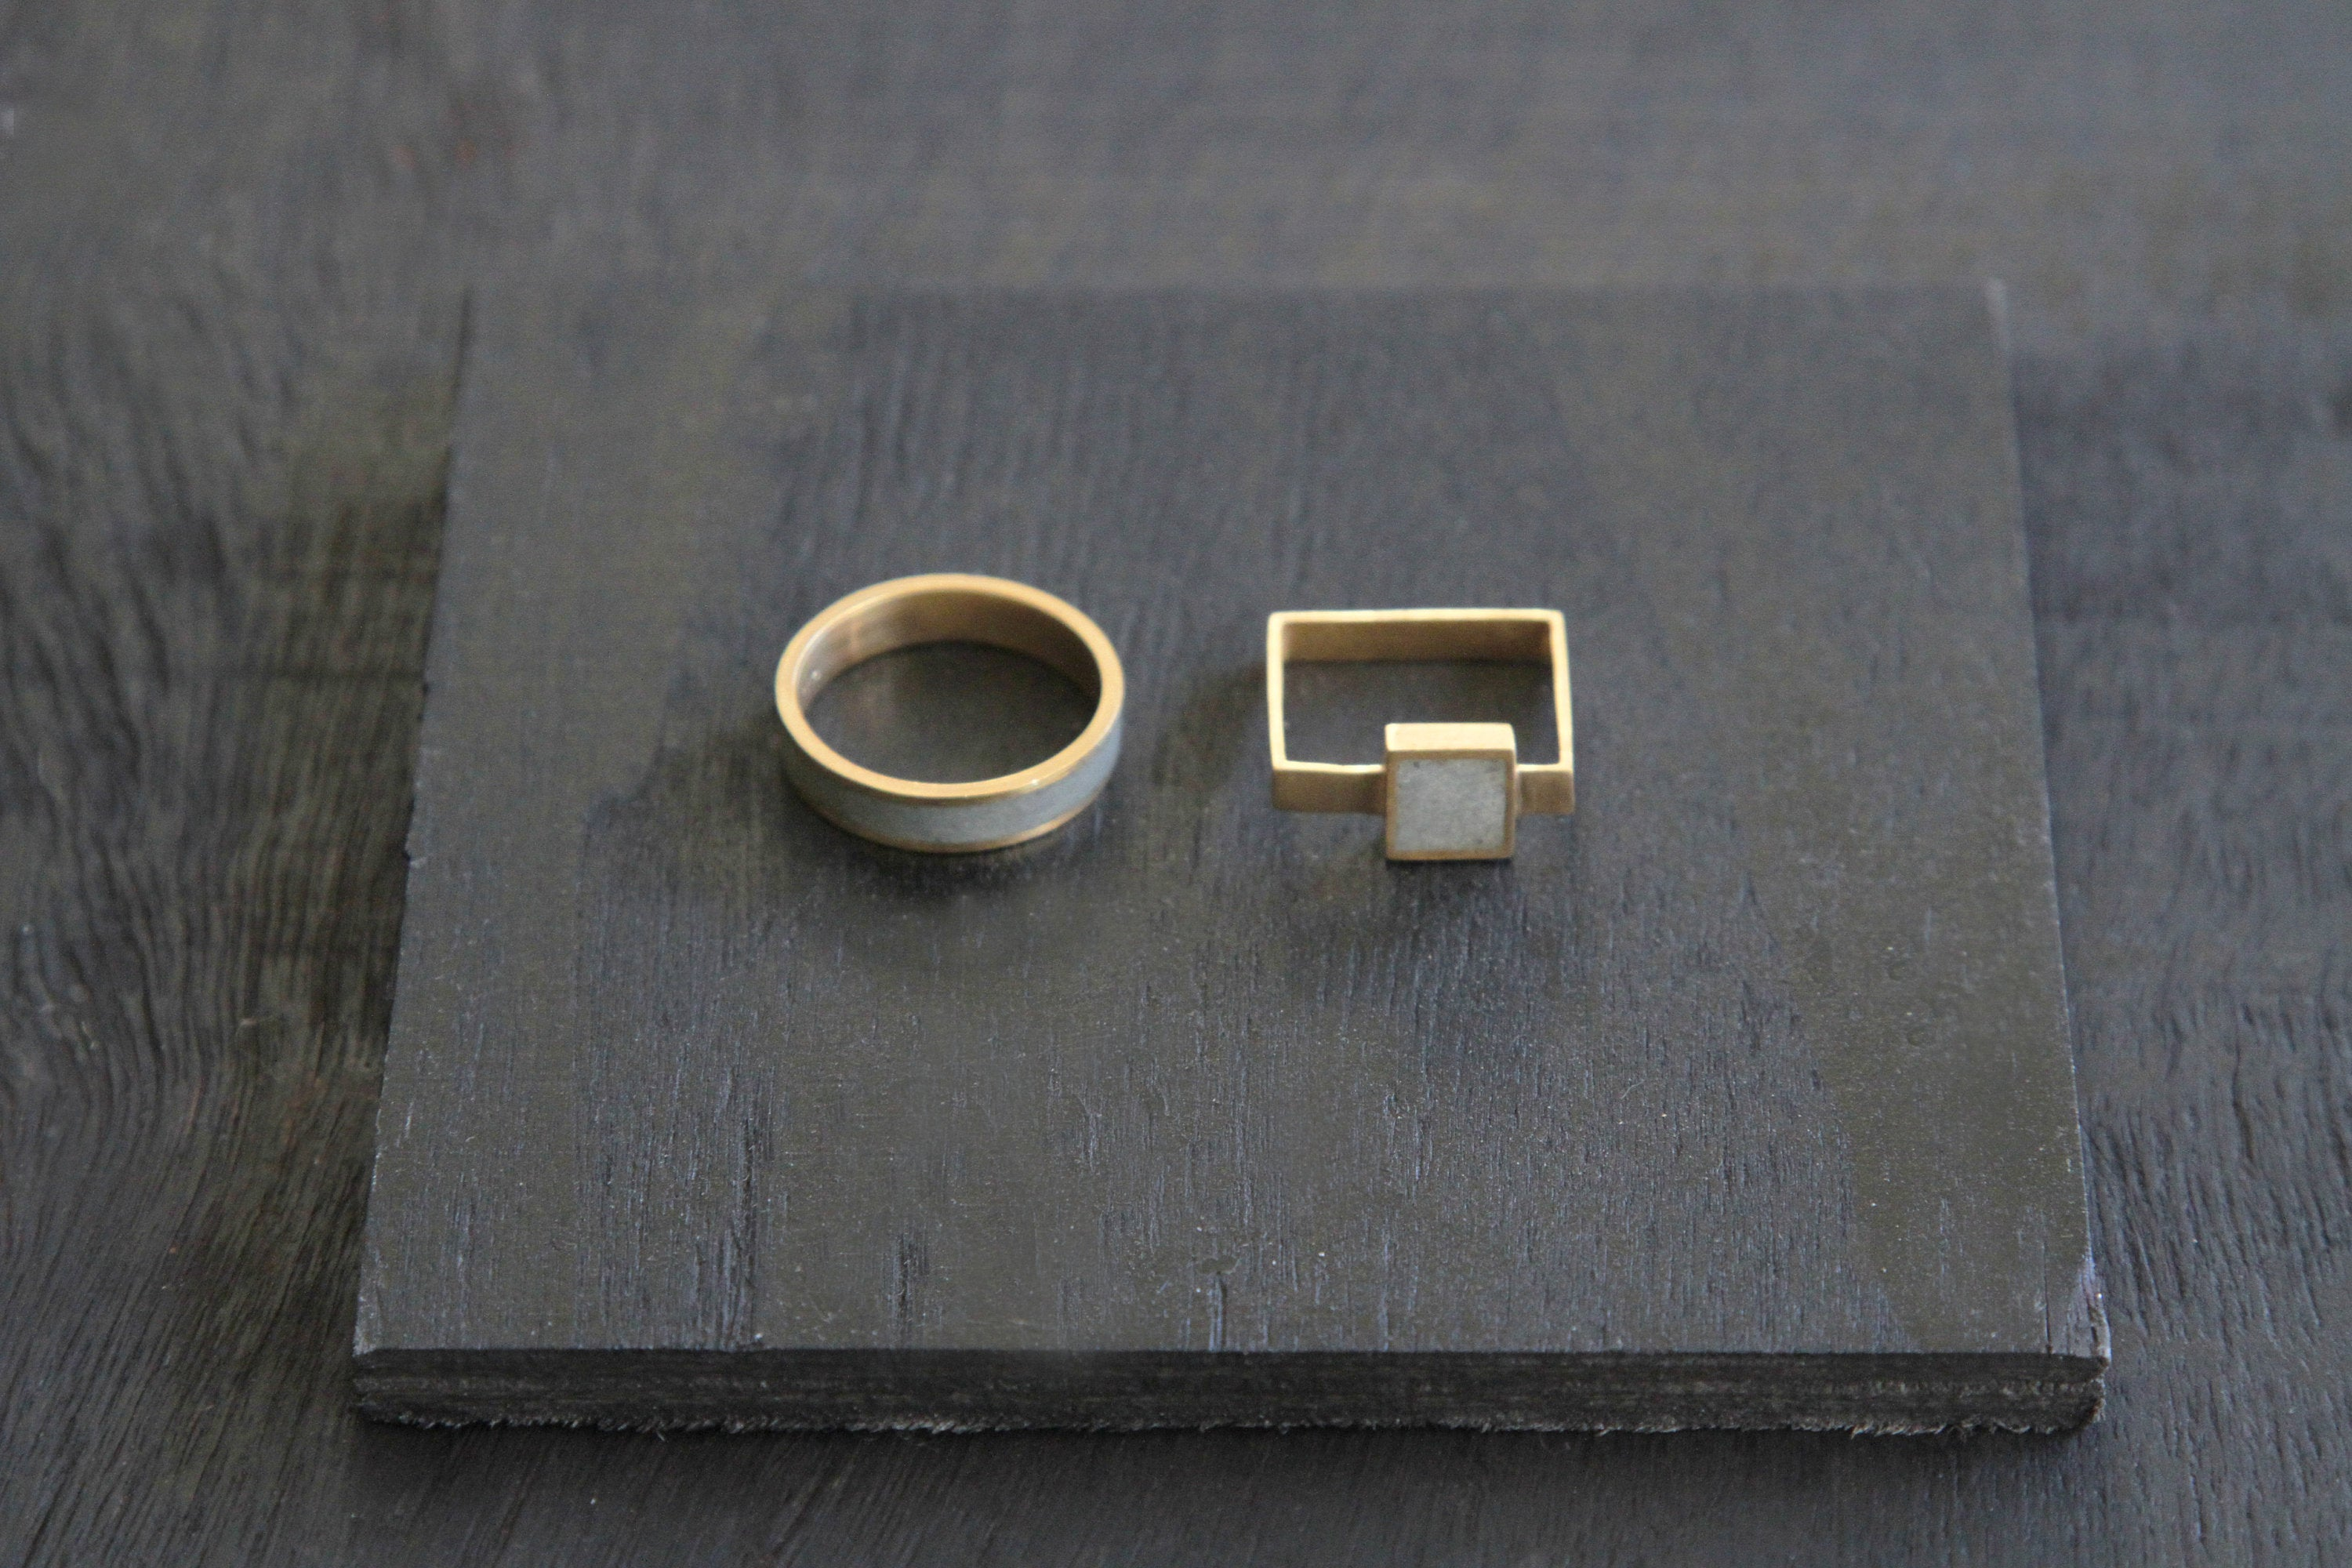 Gold Square Ring, Concrete Gold Ring, minimalist geometric Ring - hs